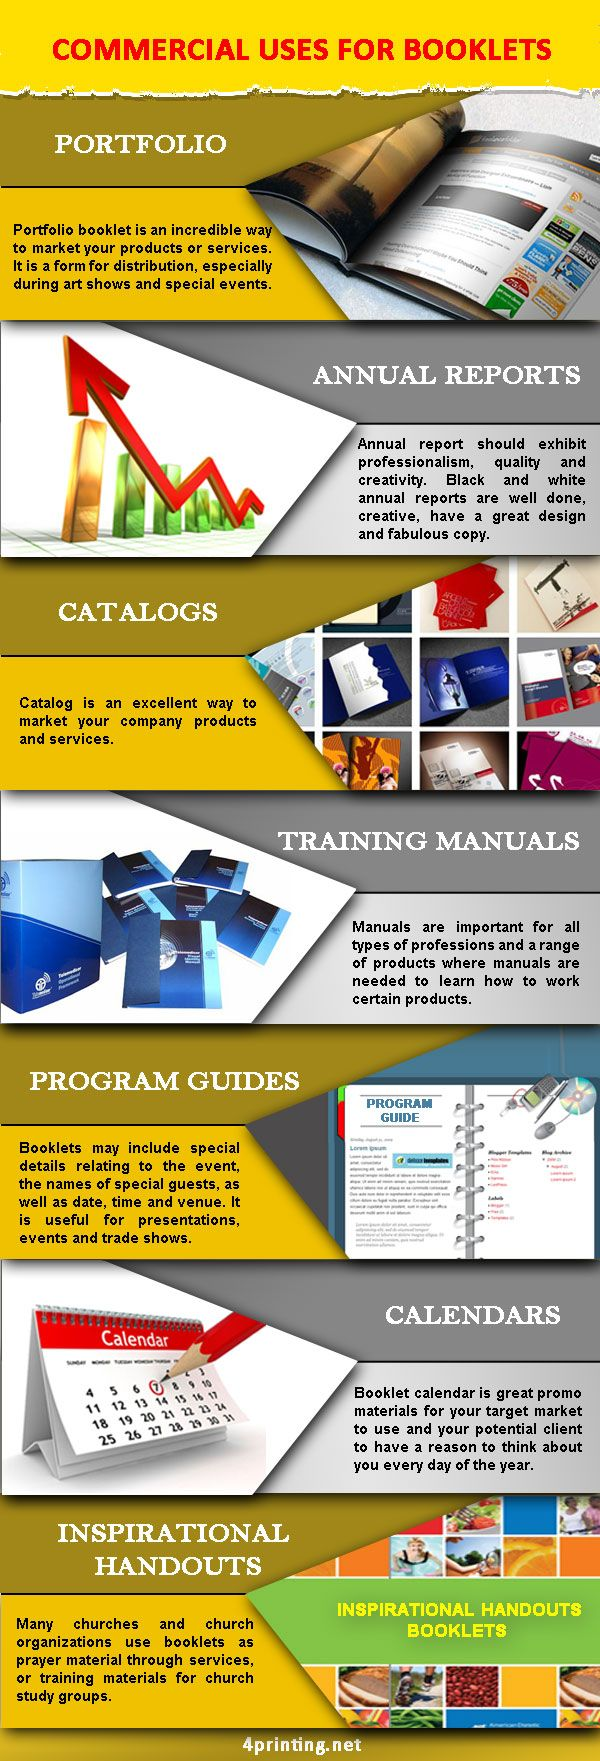 Commercial Uses for Booklets and printing services in Los Angeles, California in Orange Country .